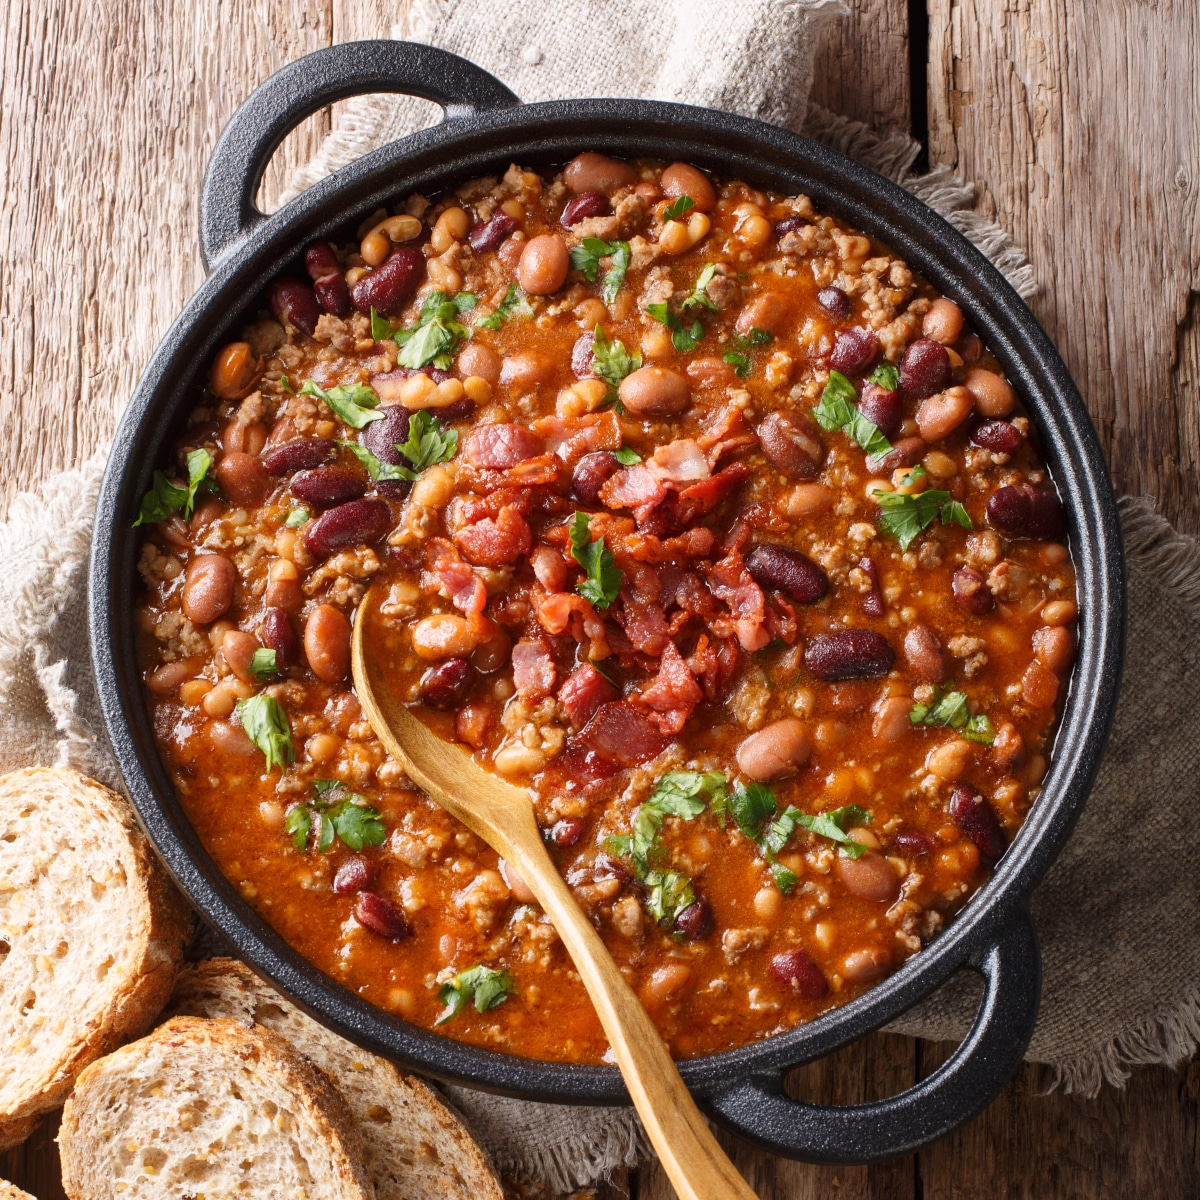 overhead view of Mexican Cowboy Beans with tomatoes, pinto beans, chorizo, and cilantro